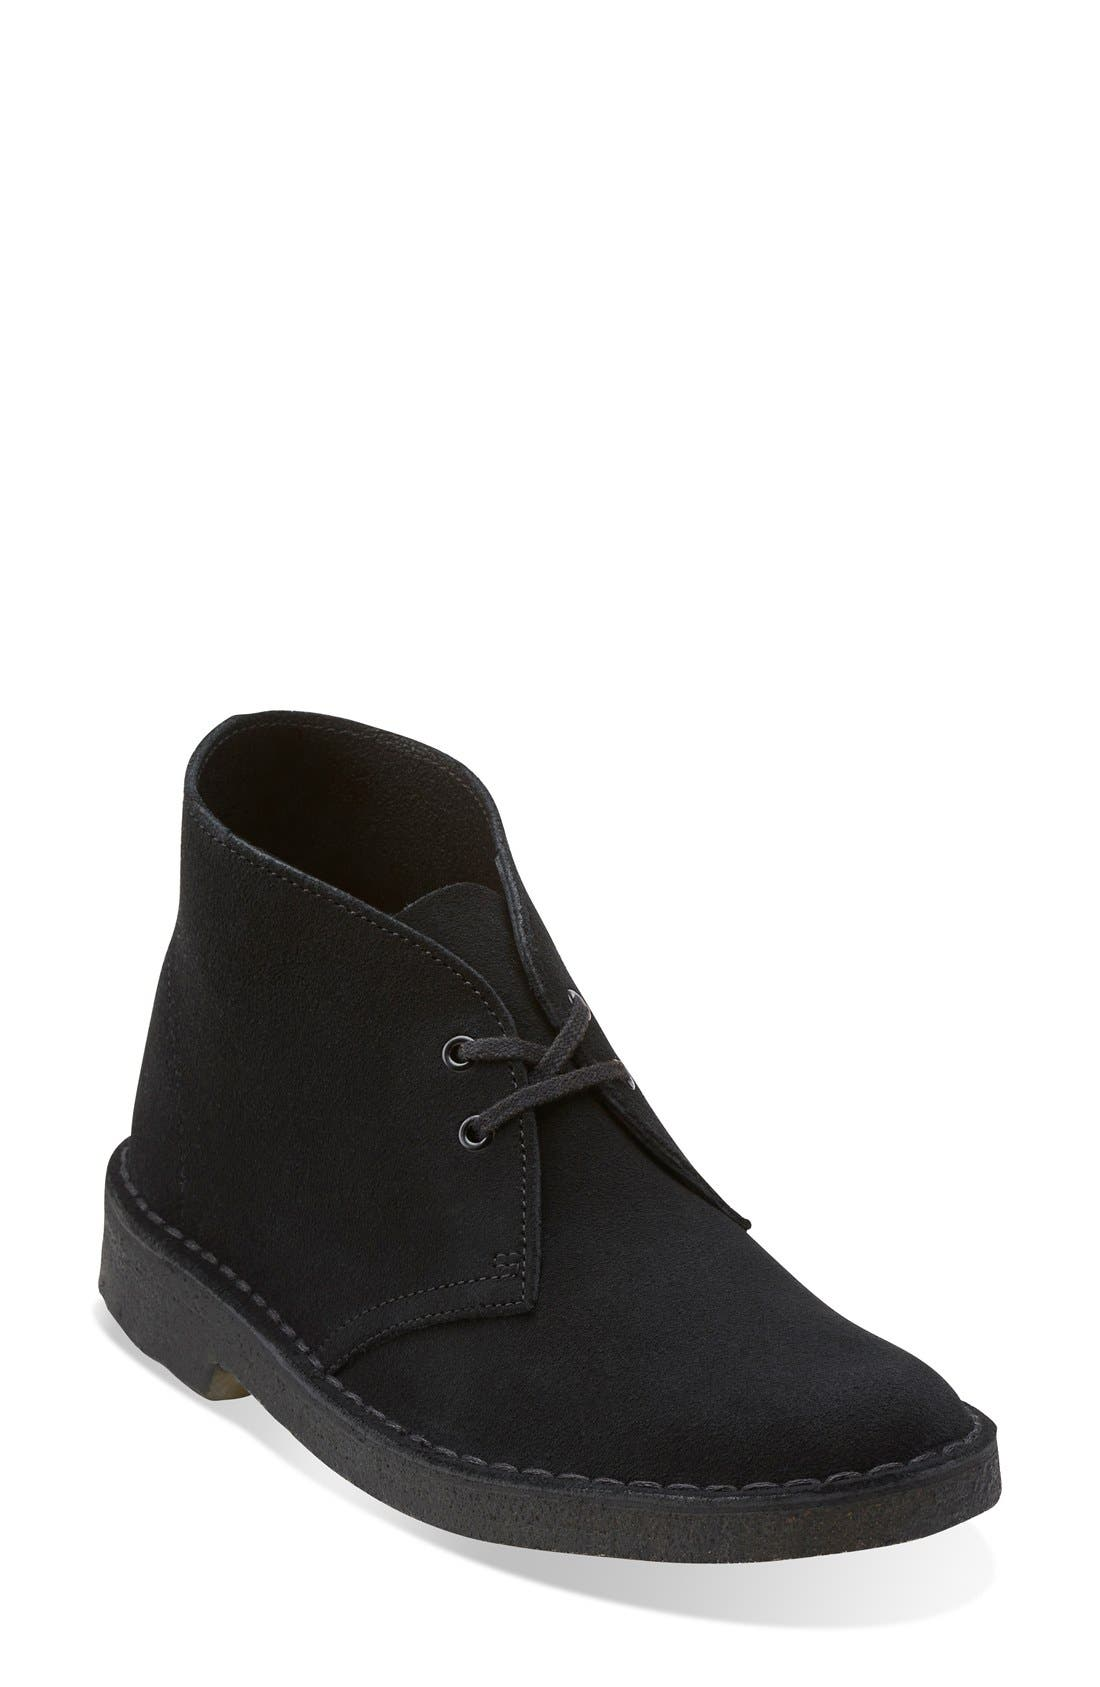 'Desert' Chukka Boot,                             Main thumbnail 1, color,                             005